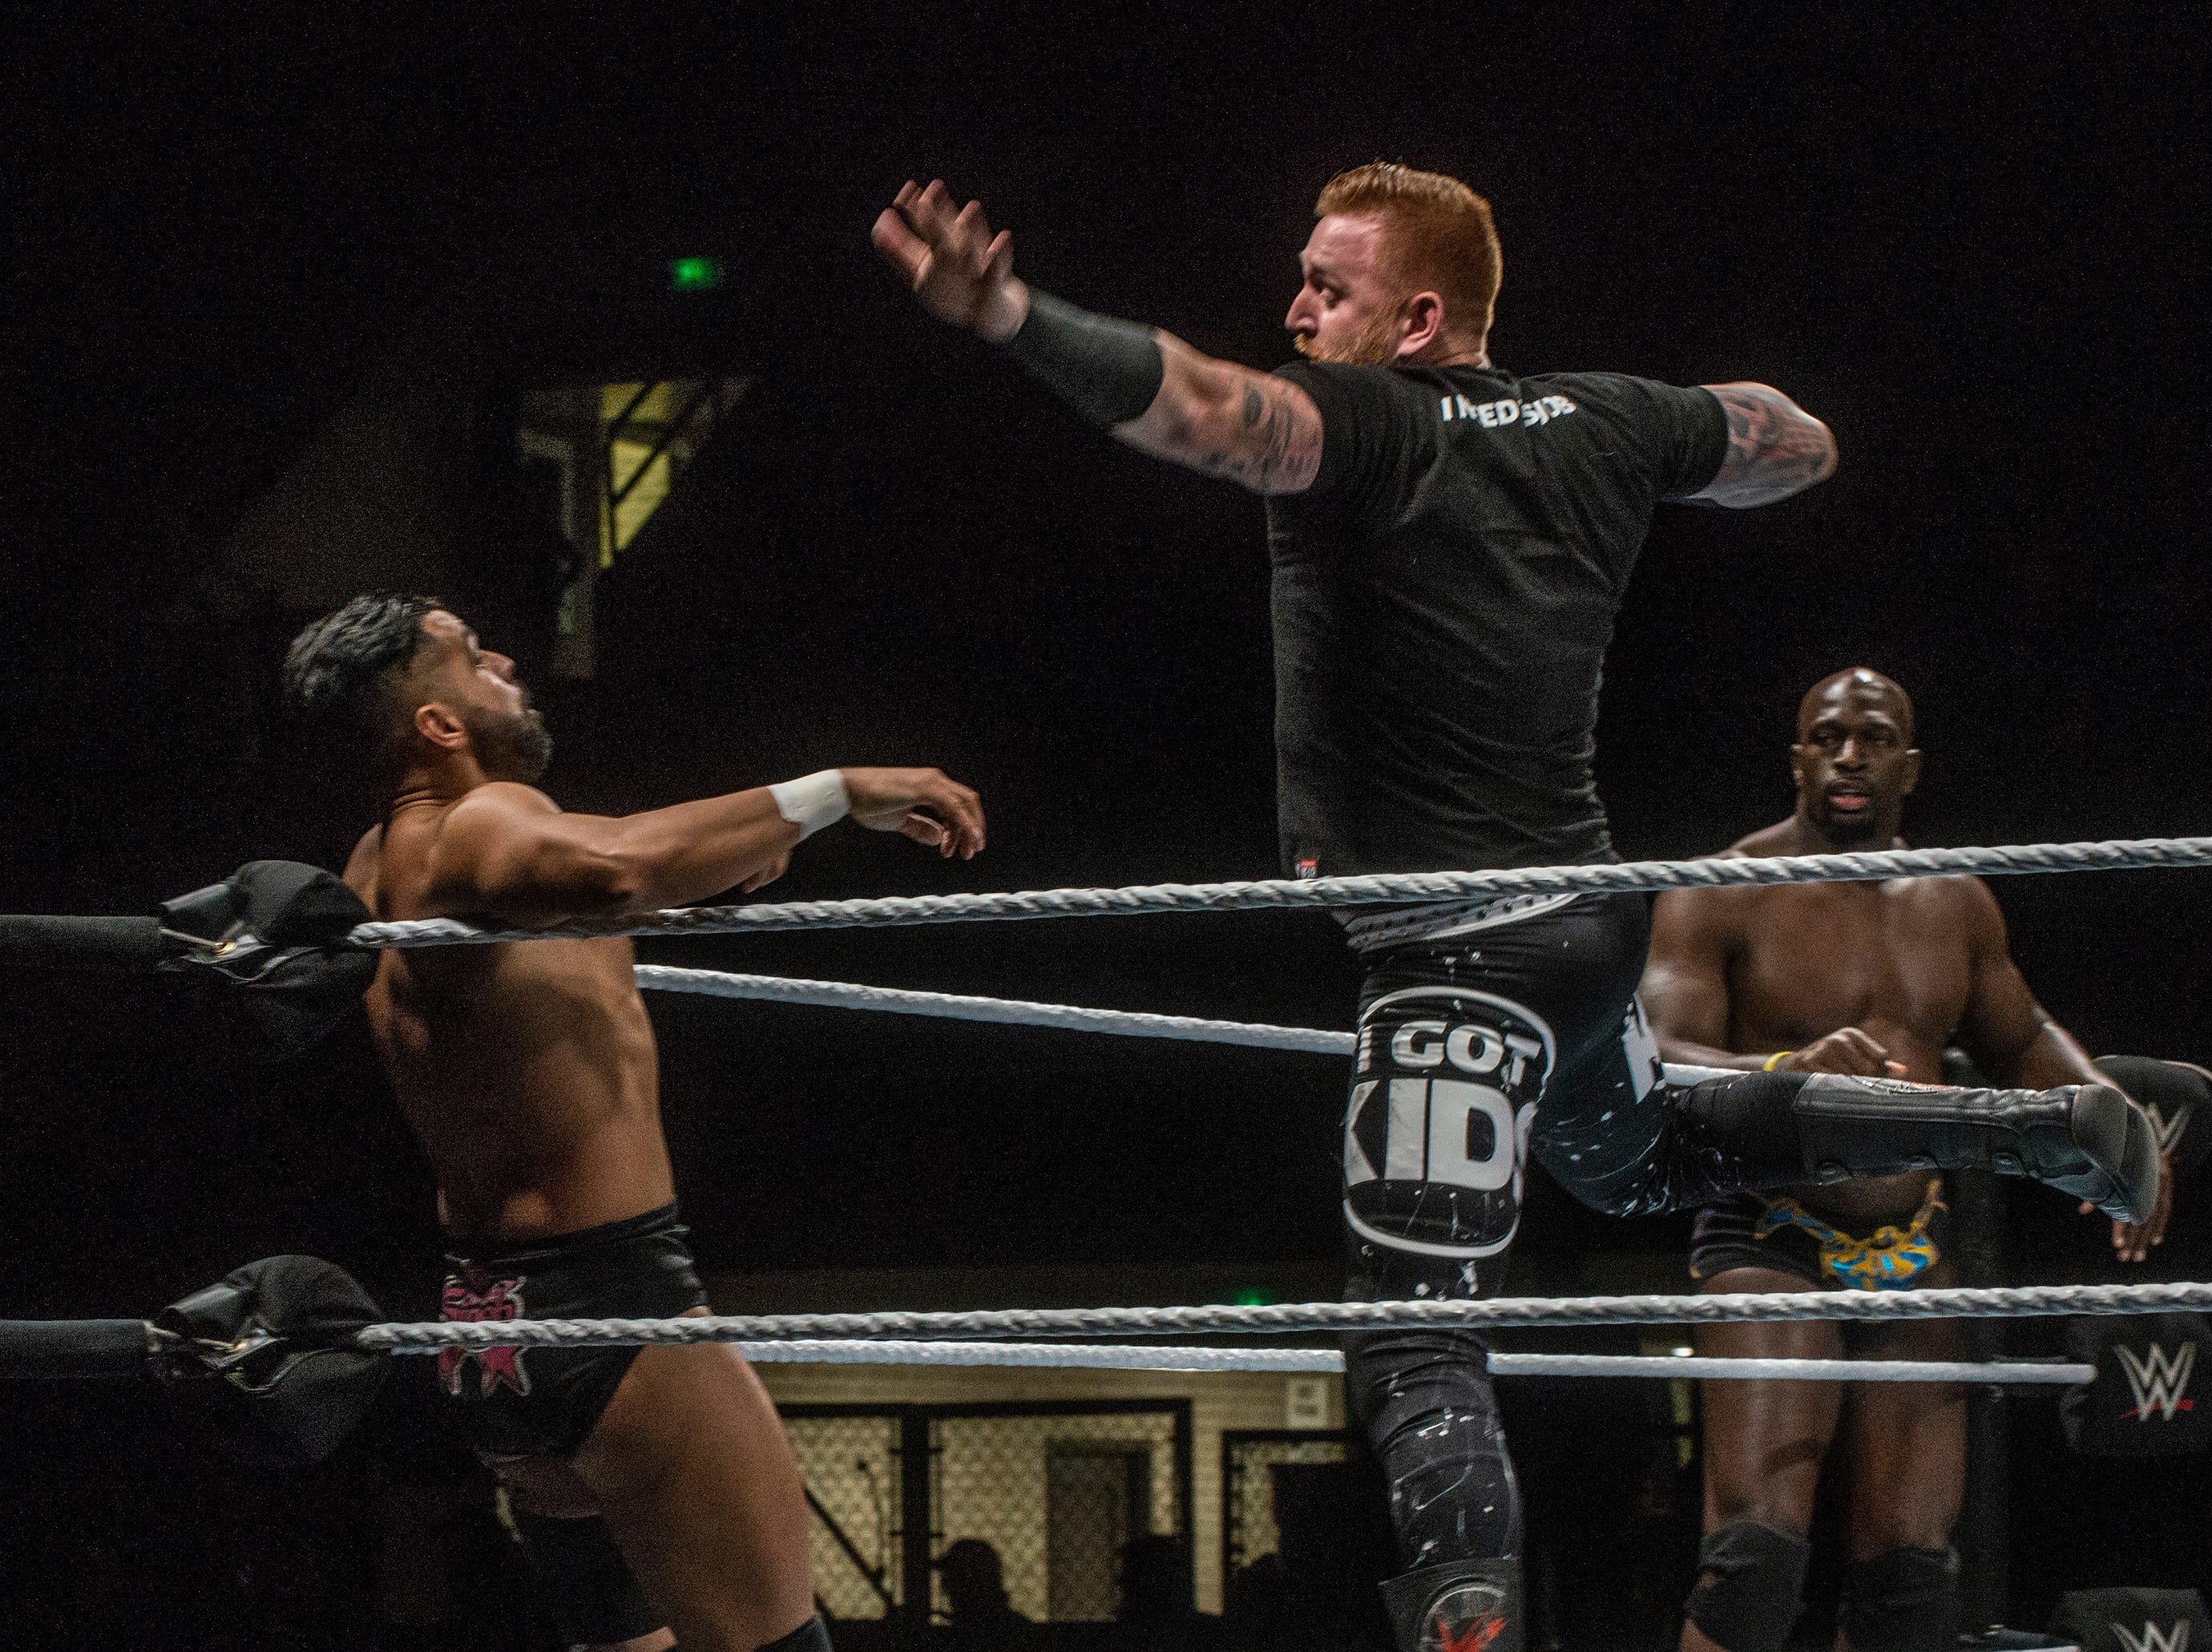 Heath Slater gives a flying shot to one of the Singh Brothers. The Singh Brothers and Jinder Mahal in a six man tag team match against Titus OÕNeil, Heath Slater and Rhyno. WWE Live Road to Wrestlemania came to Garrett Coliseum in Montgomery on Sunday, Feb. 24, 2019.